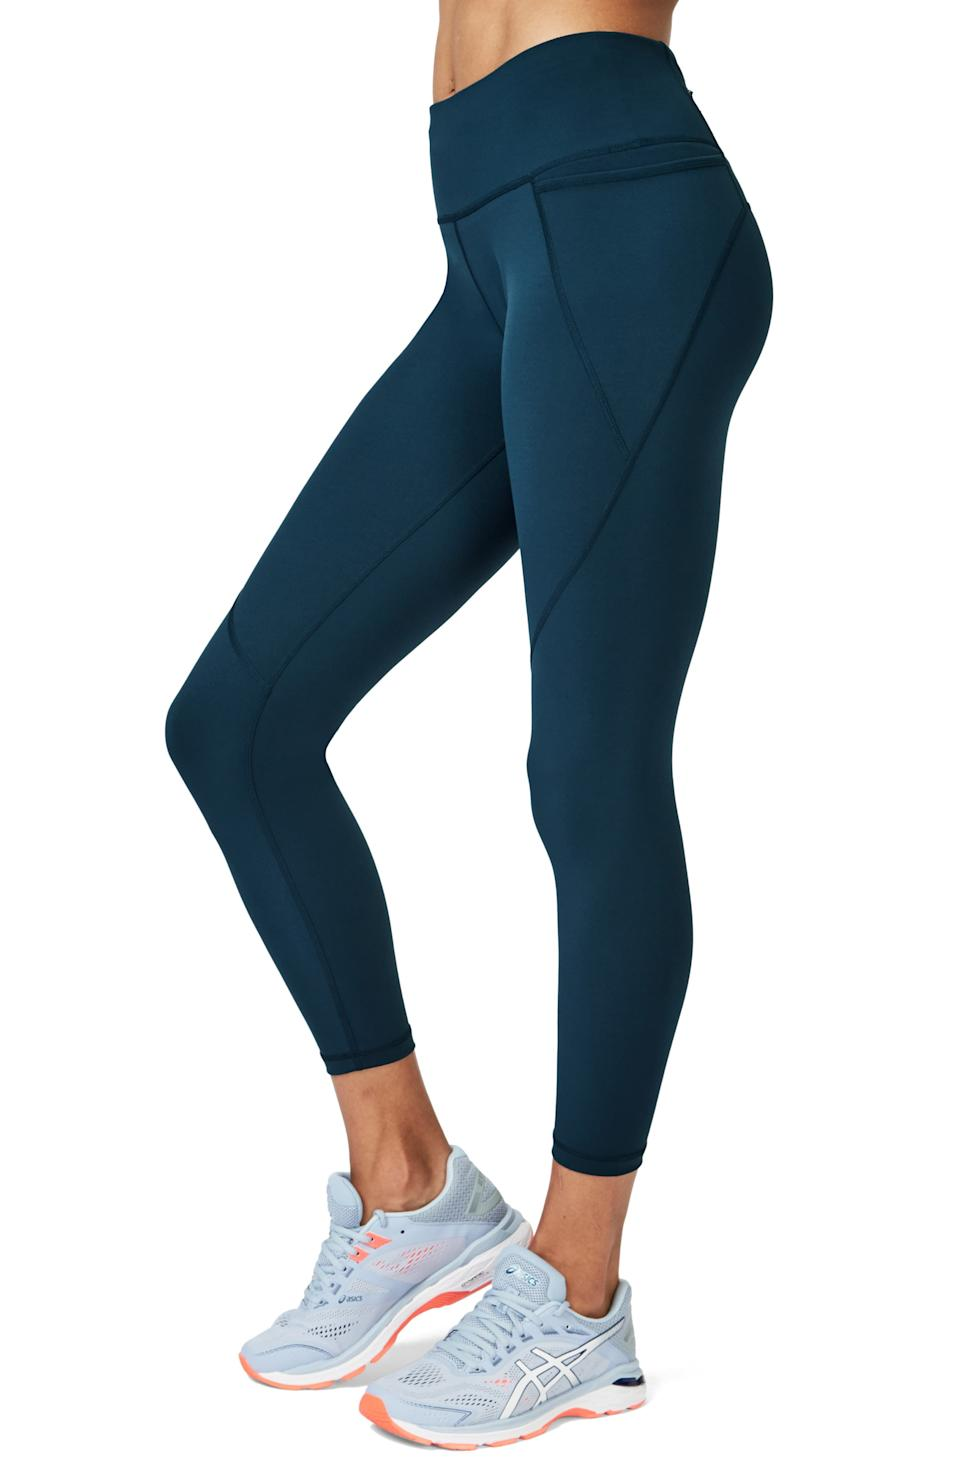 """<h3>Sweaty Betty Power Workout Leggings </h3><br><br>Crafted from super-stretchy and sculpting material with a triple-pocket design, these top-rated leggings have secure storage during intense activities covered. As one rave reviewer attests, """"Perfect pocket pants! I am LOVING the new style Powers with the side pocket. Makes carrying phone in the gym so much more convenient. Plus I am a huge fan of the beetle blue color! #teamsweatybetty""""<br><br><strong>Sweaty Betty</strong> Power 7/8 Workout Leggings, $, available at <a href=""""https://go.skimresources.com/?id=30283X879131&url=https%3A%2F%2Fwww.sweatybetty.com%2Fus%2Fshop%2Fnew-arrivals%2Fpower-7-8-workout-leggings-SB540078_GreyElephantCamoPrint.html"""" rel=""""nofollow noopener"""" target=""""_blank"""" data-ylk=""""slk:Sweaty Betty"""" class=""""link rapid-noclick-resp"""">Sweaty Betty</a>"""